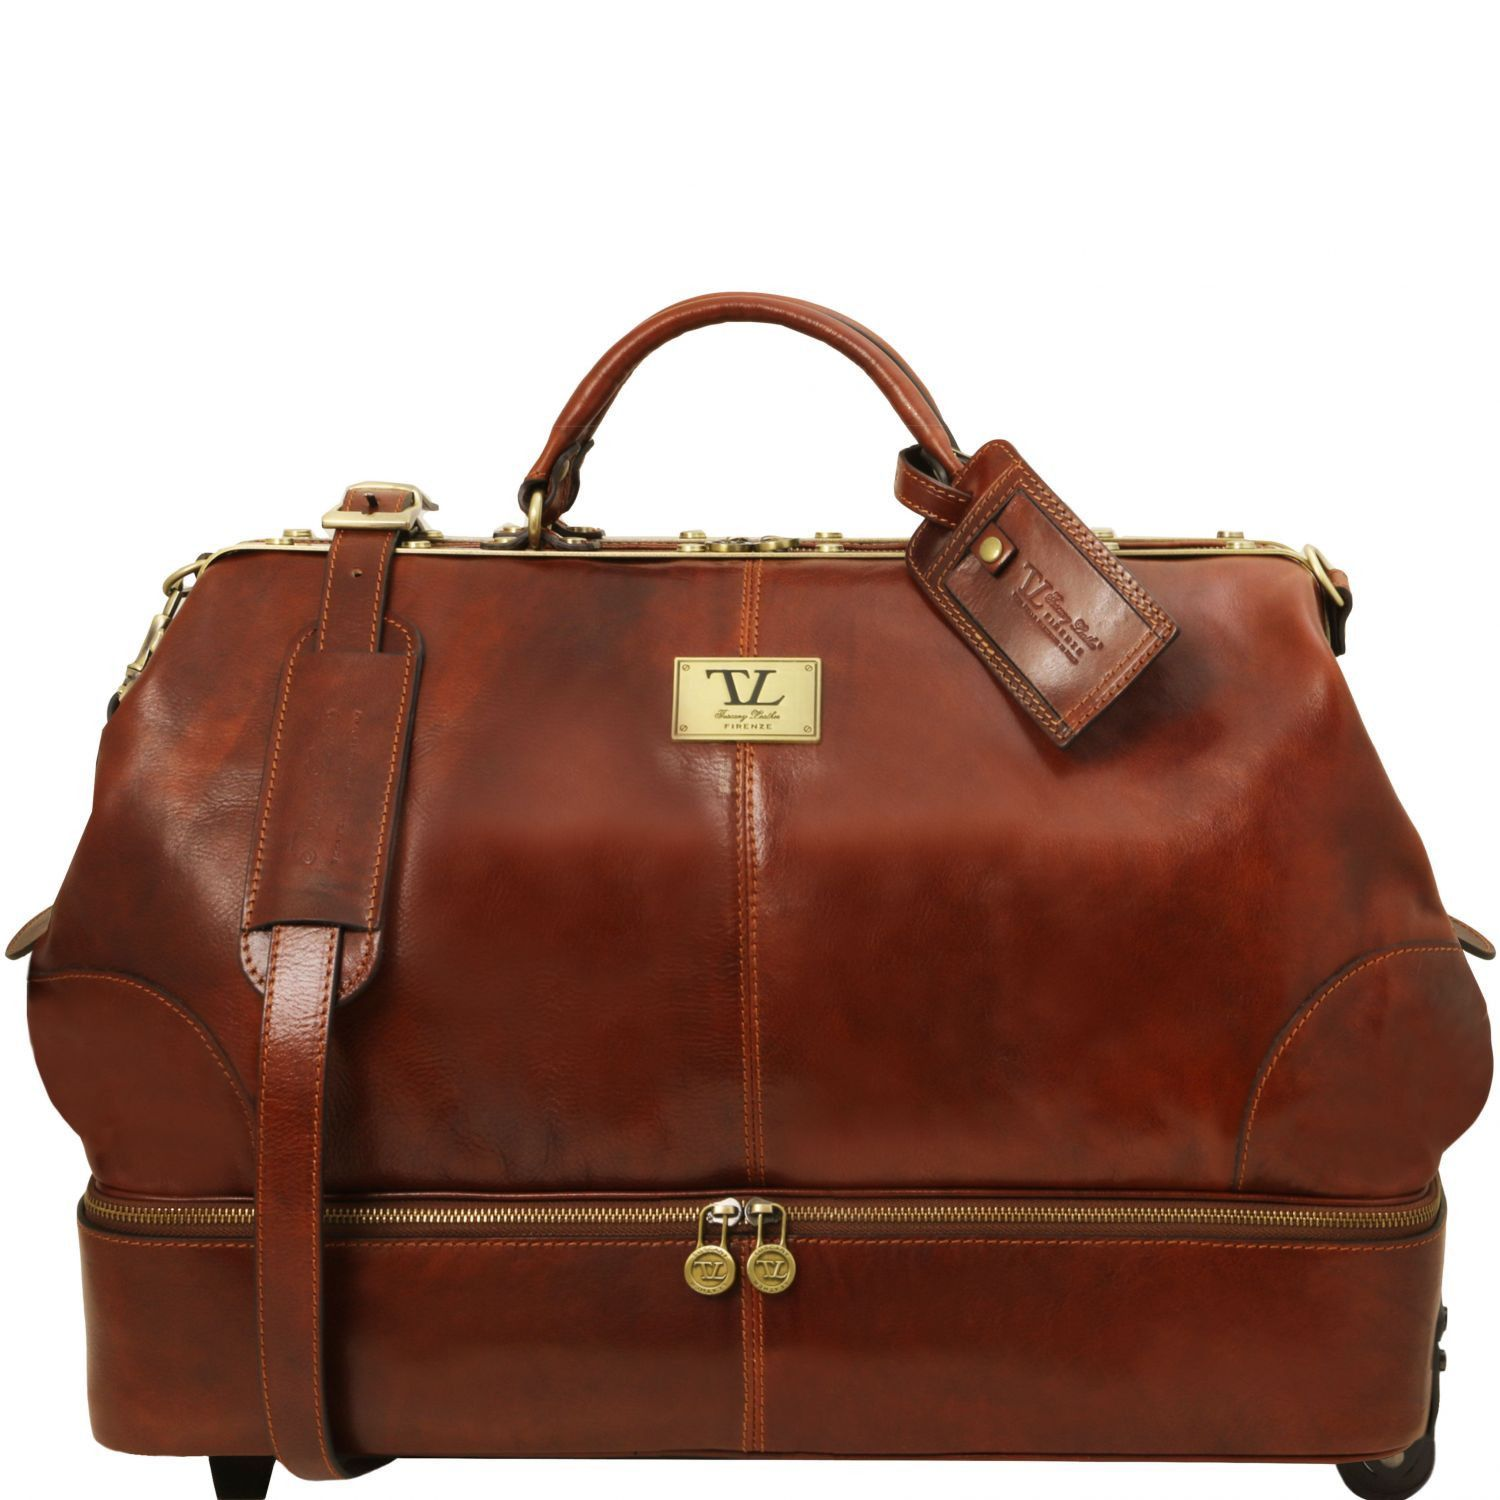 SIVIGLIA DOUBLE BOTTOM GLADSTONE BAG